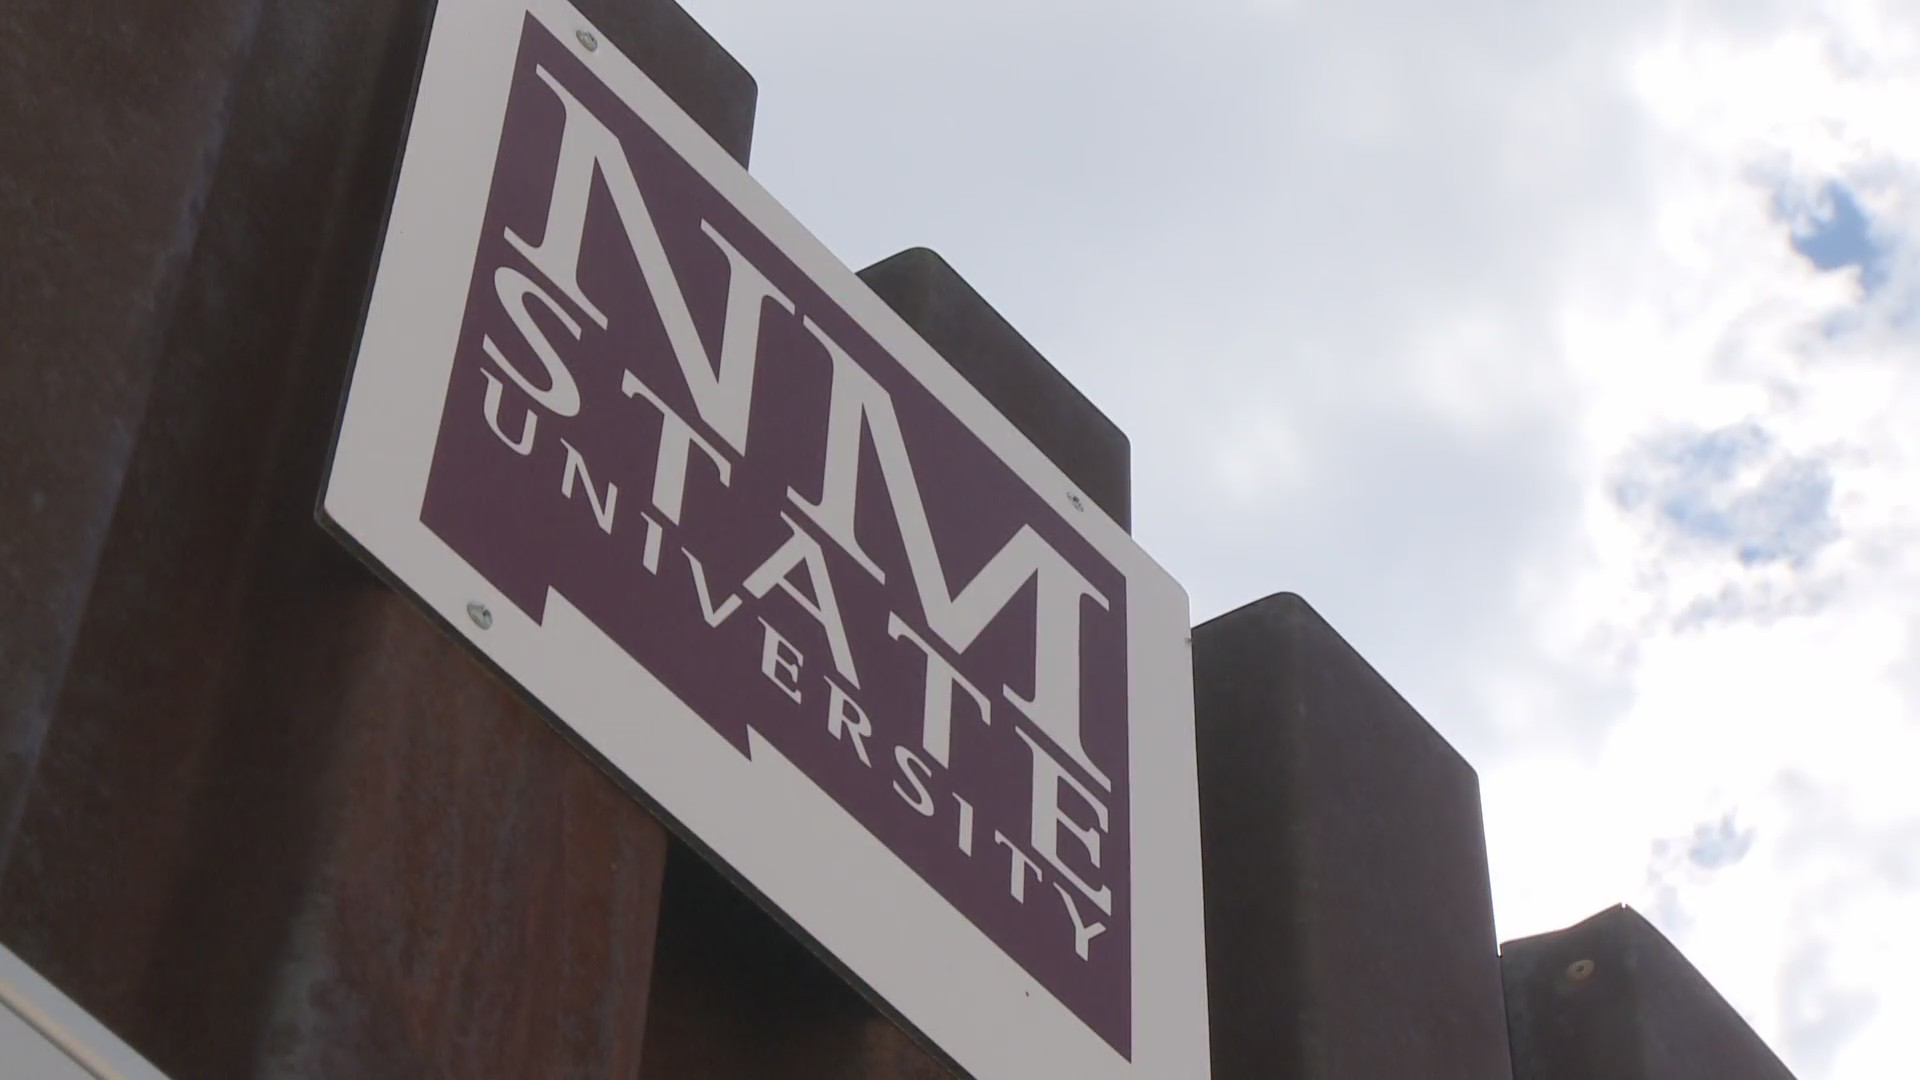 Nmsu Shuts Down On Campus Workouts After Positive Covid 19 Tests Krqe News 13